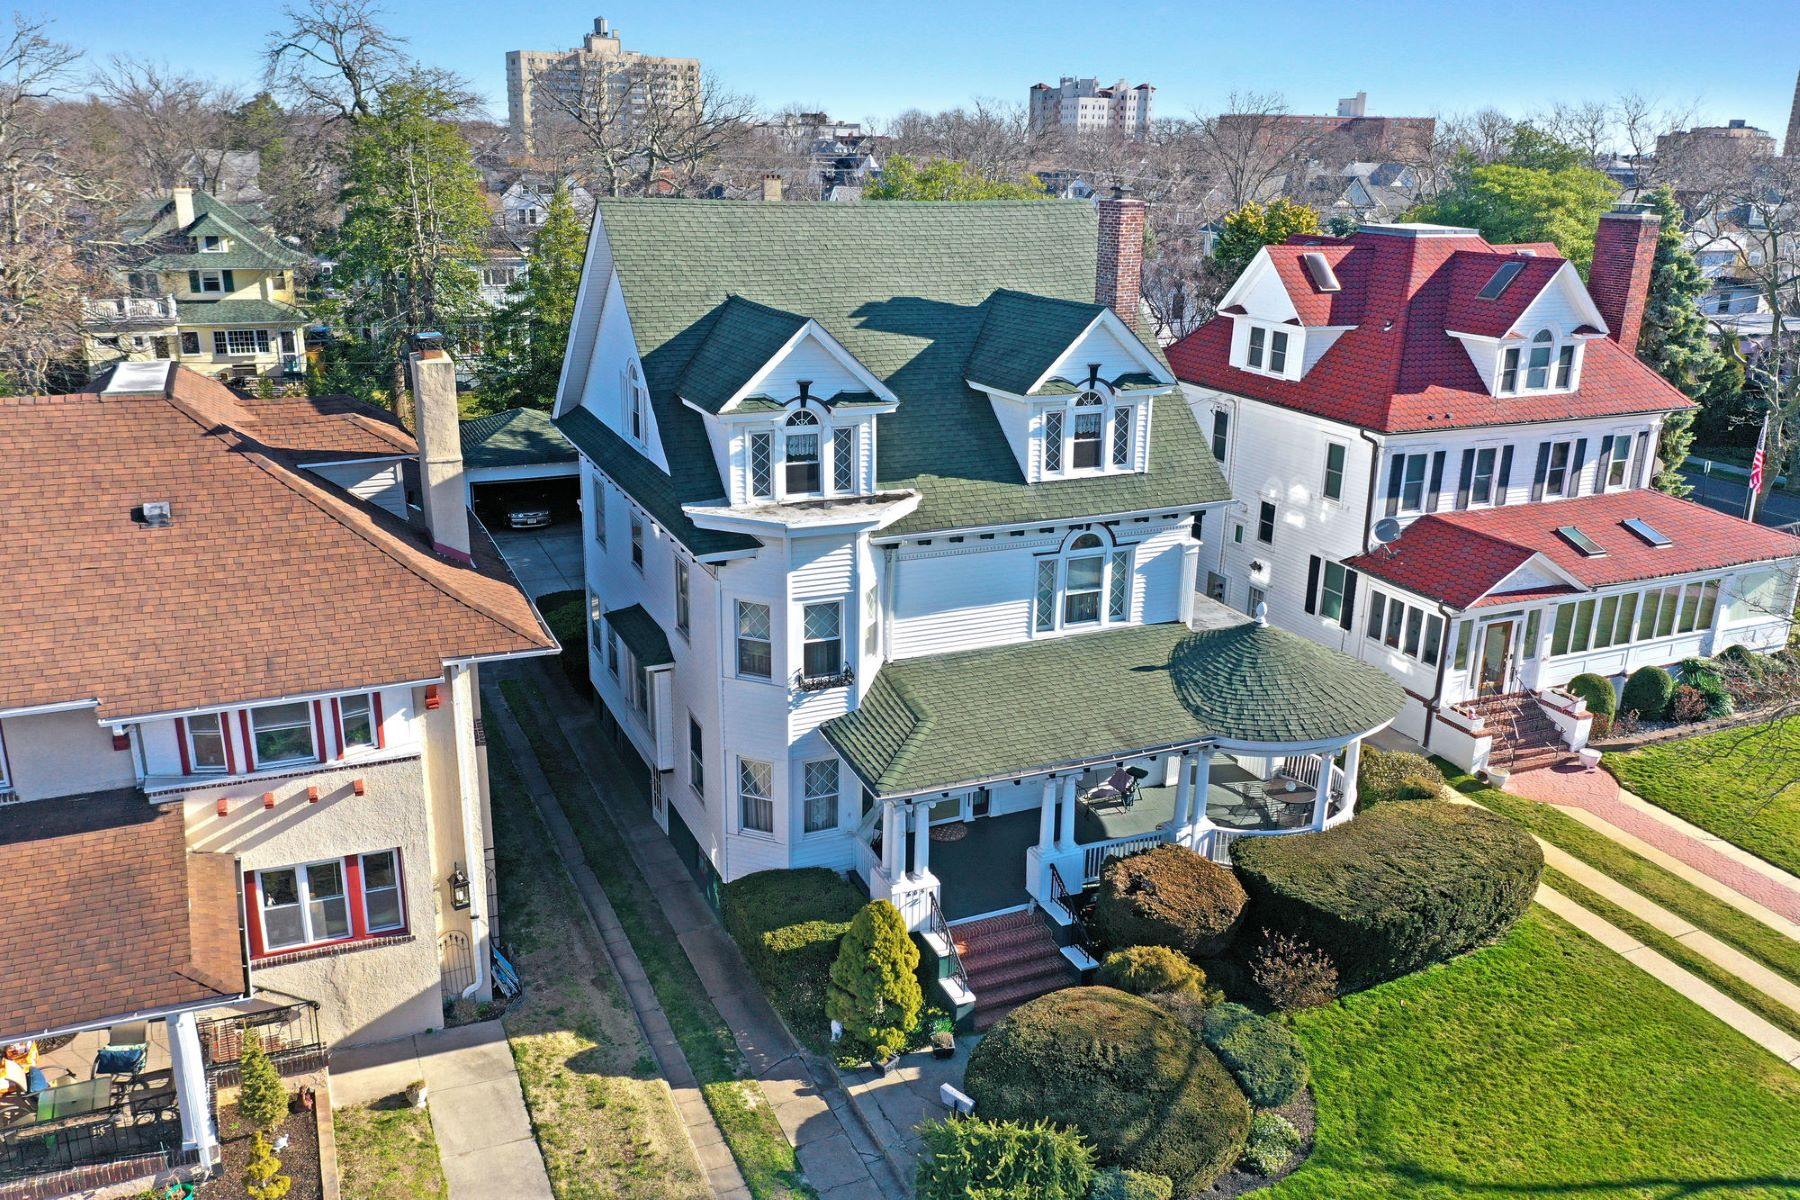 Single Family Homes for Sale at Turn of the Century Home 605 Sunset Avenue Asbury Park, New Jersey 07712 United States